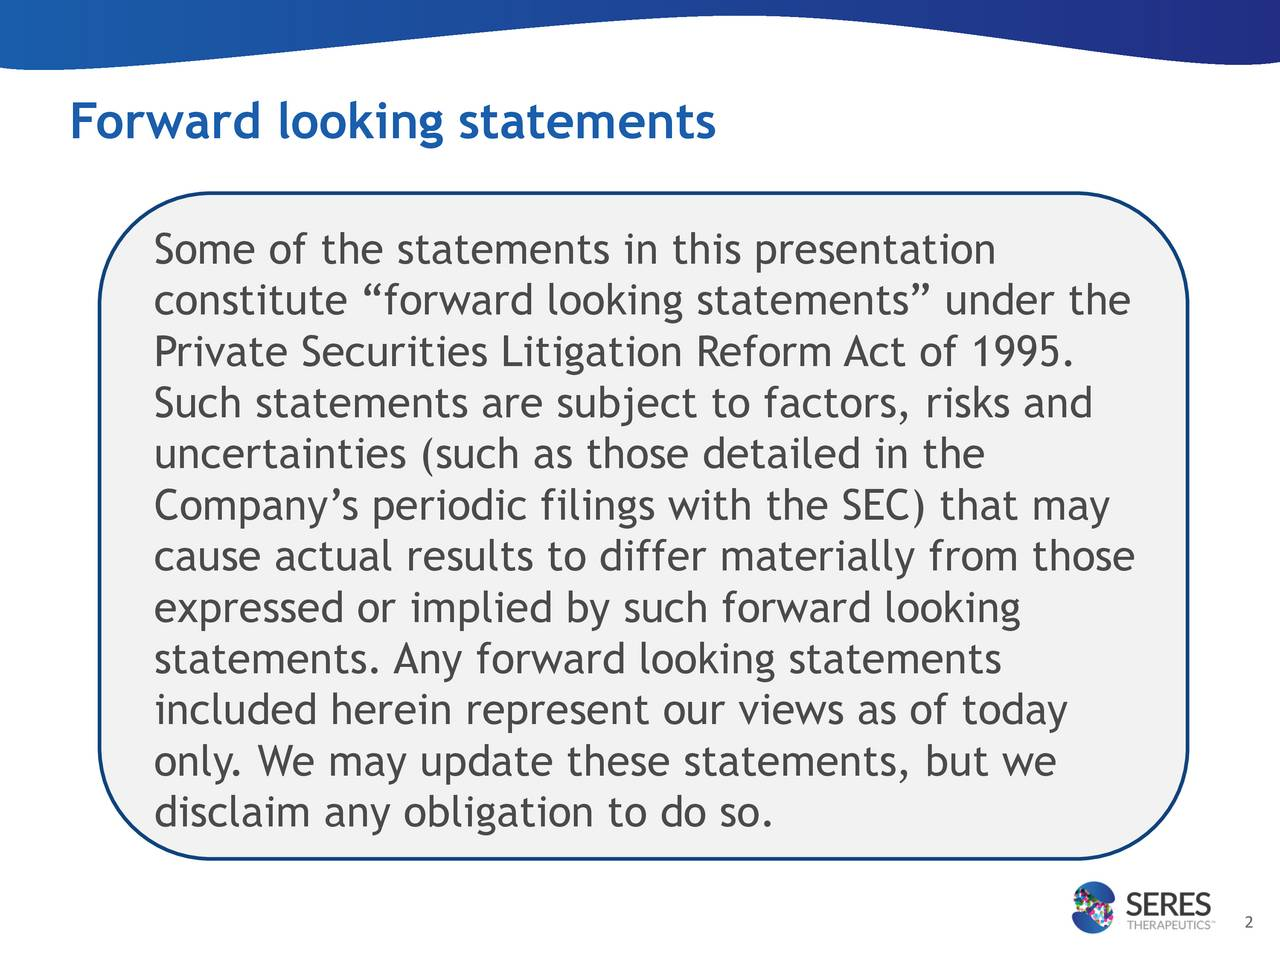 Some of the statements in this presentation constitute forward looking statements under the Private Securities Litigation Reform Act of 1995. Such statements are subject to factors, risks and uncertainties (such as those detailed in the Companys periodic filings with the SEC) that may cause actual results to differ materially from those expressed or implied by such forward looking statements. Any forward looking statements included herein represent our views as of today only. We may update these statements, but we disclaim any obligation to do so. 2